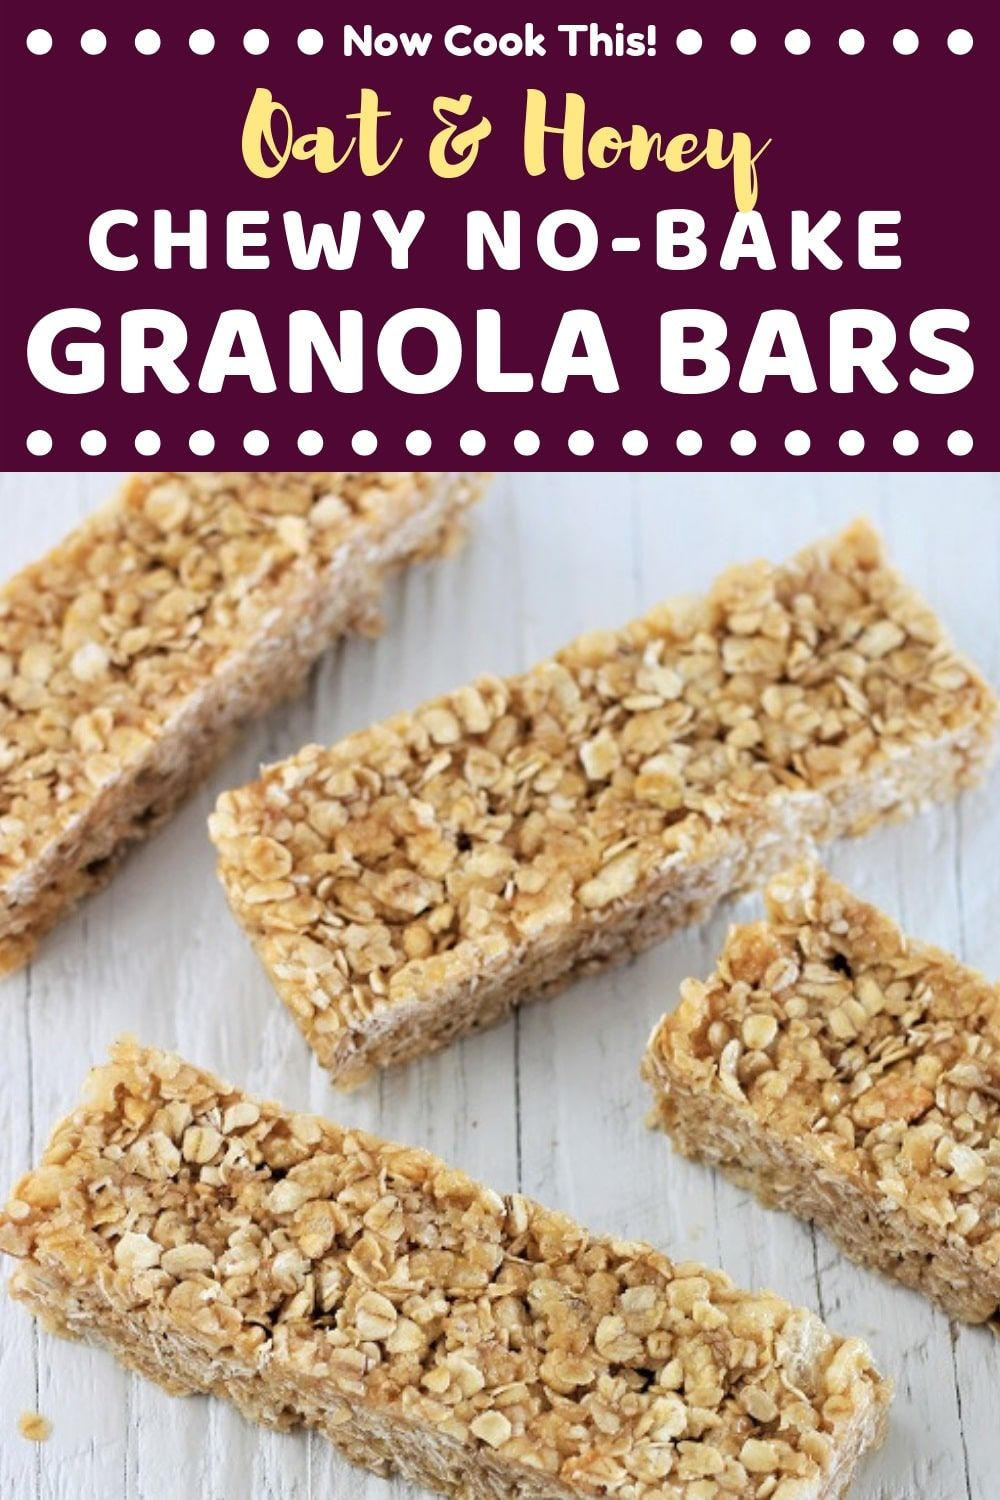 Oat and Honey Chewy No-Bake Granola Bars | Recipe in 2020 ...